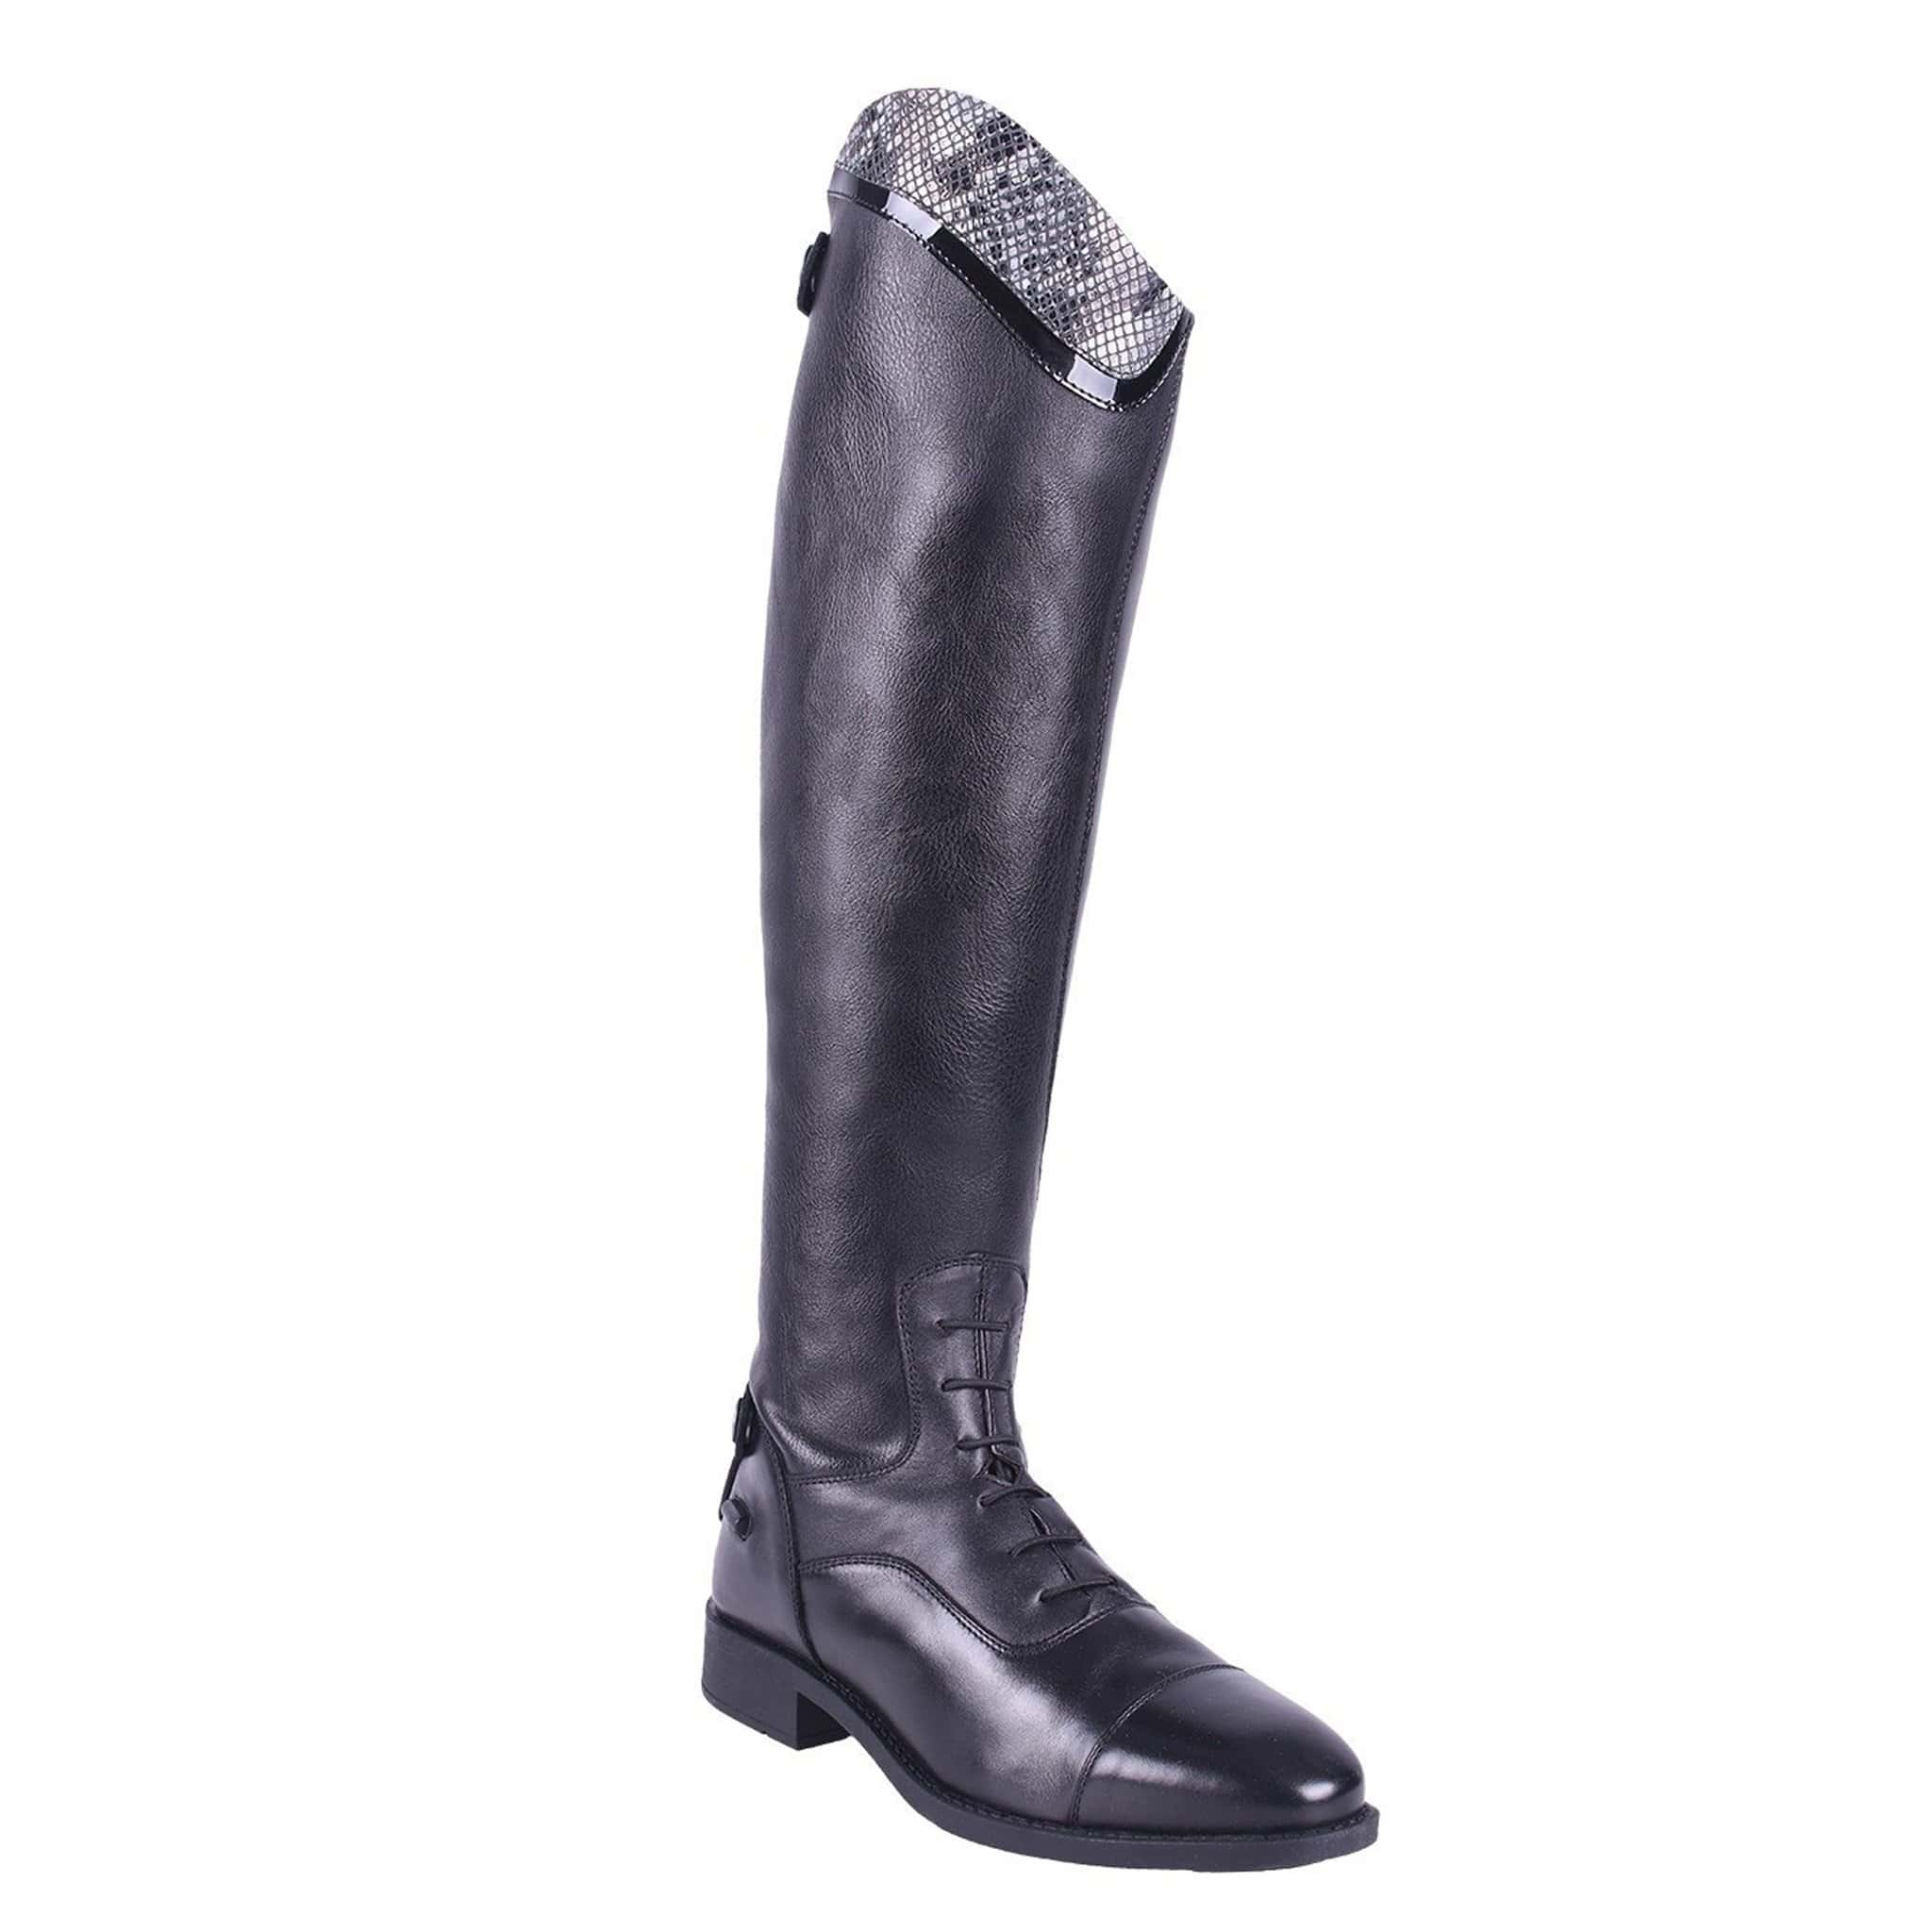 QHP Birgit Snake Riding Boot Black 7227